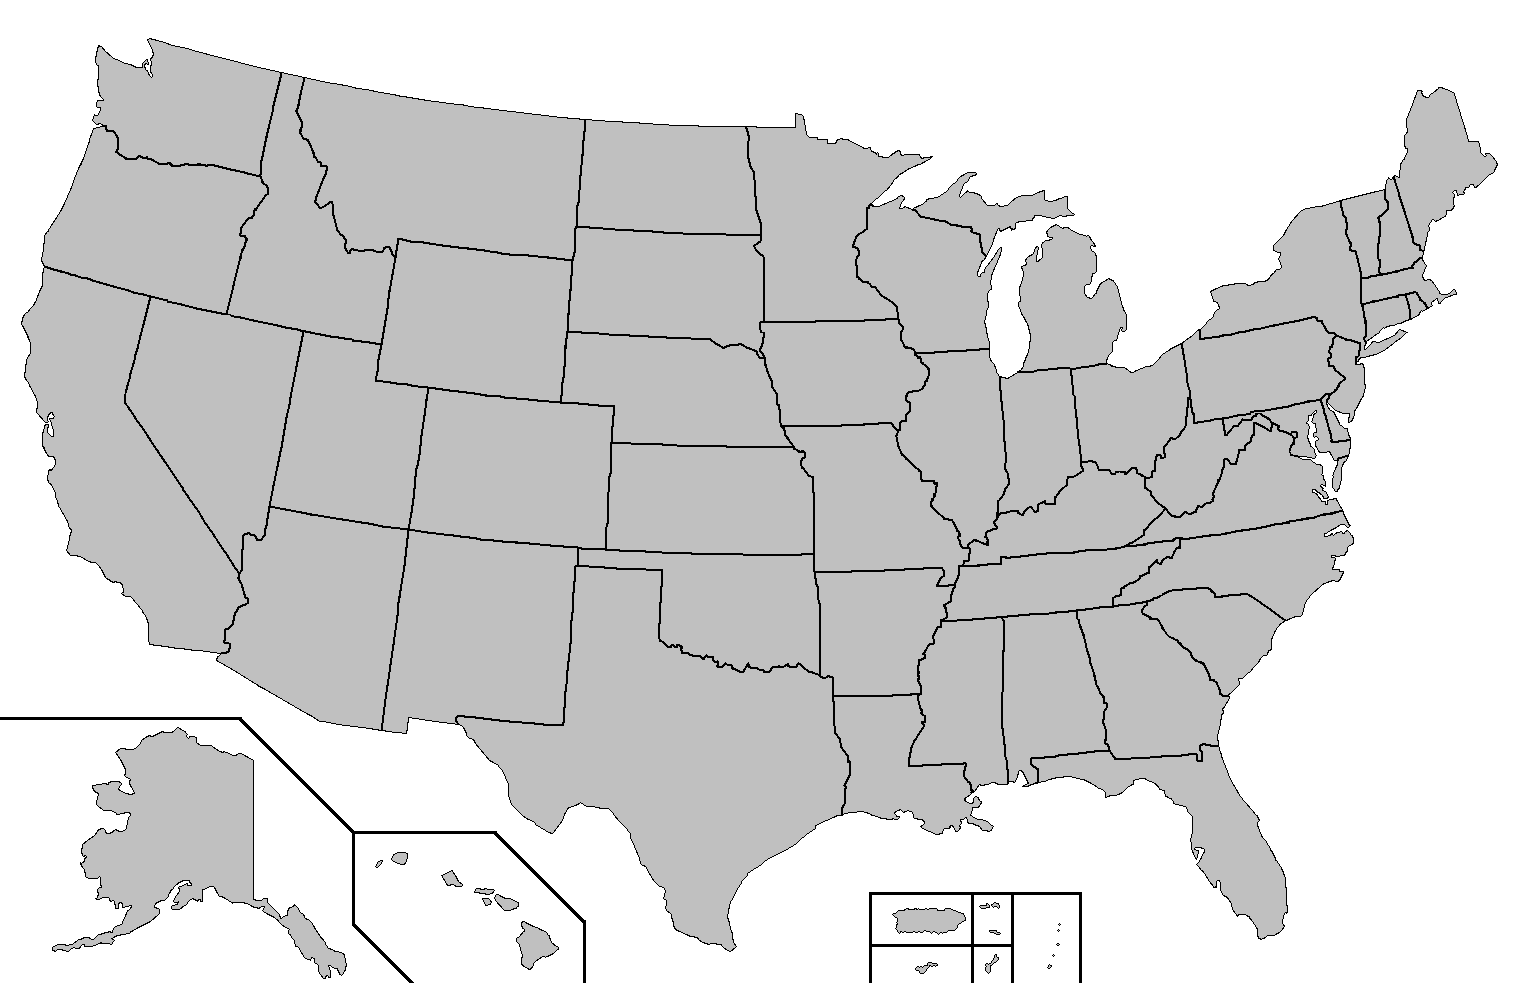 FileBlank Map Of The United StatesPNG Wikimedia Commons - Us map of 50 states